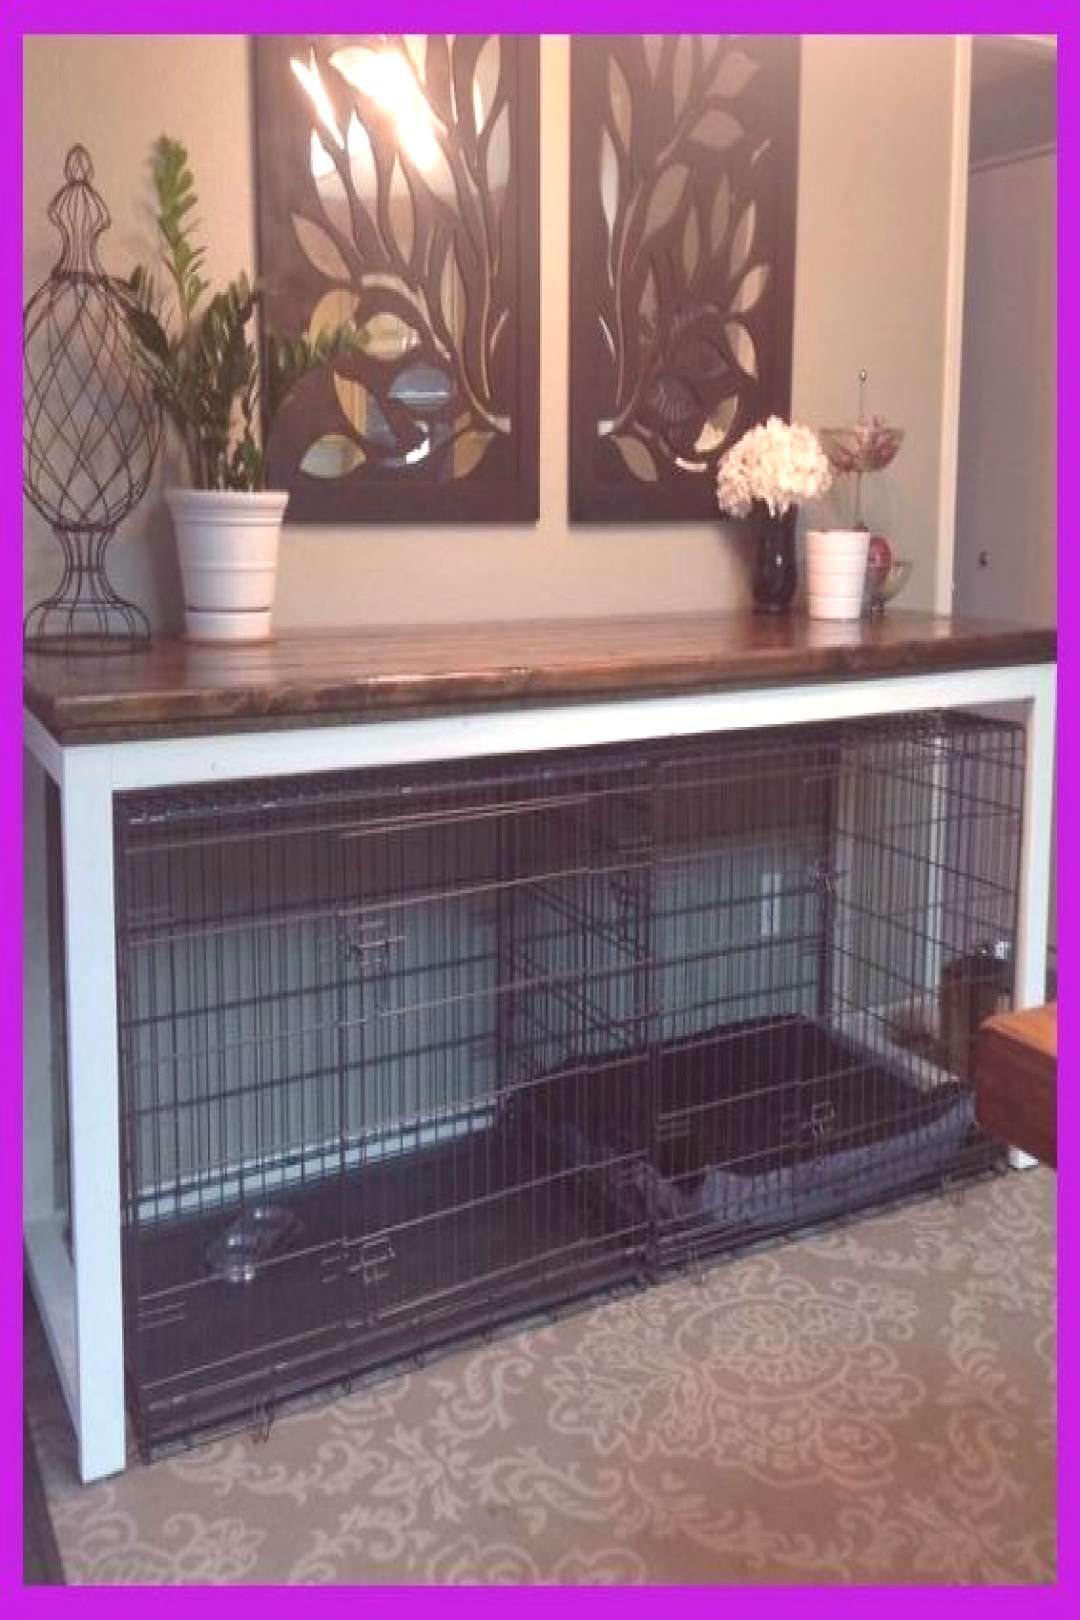 When choosing a dog kennel, there are a number of factors to consider. You want to offer cautious f